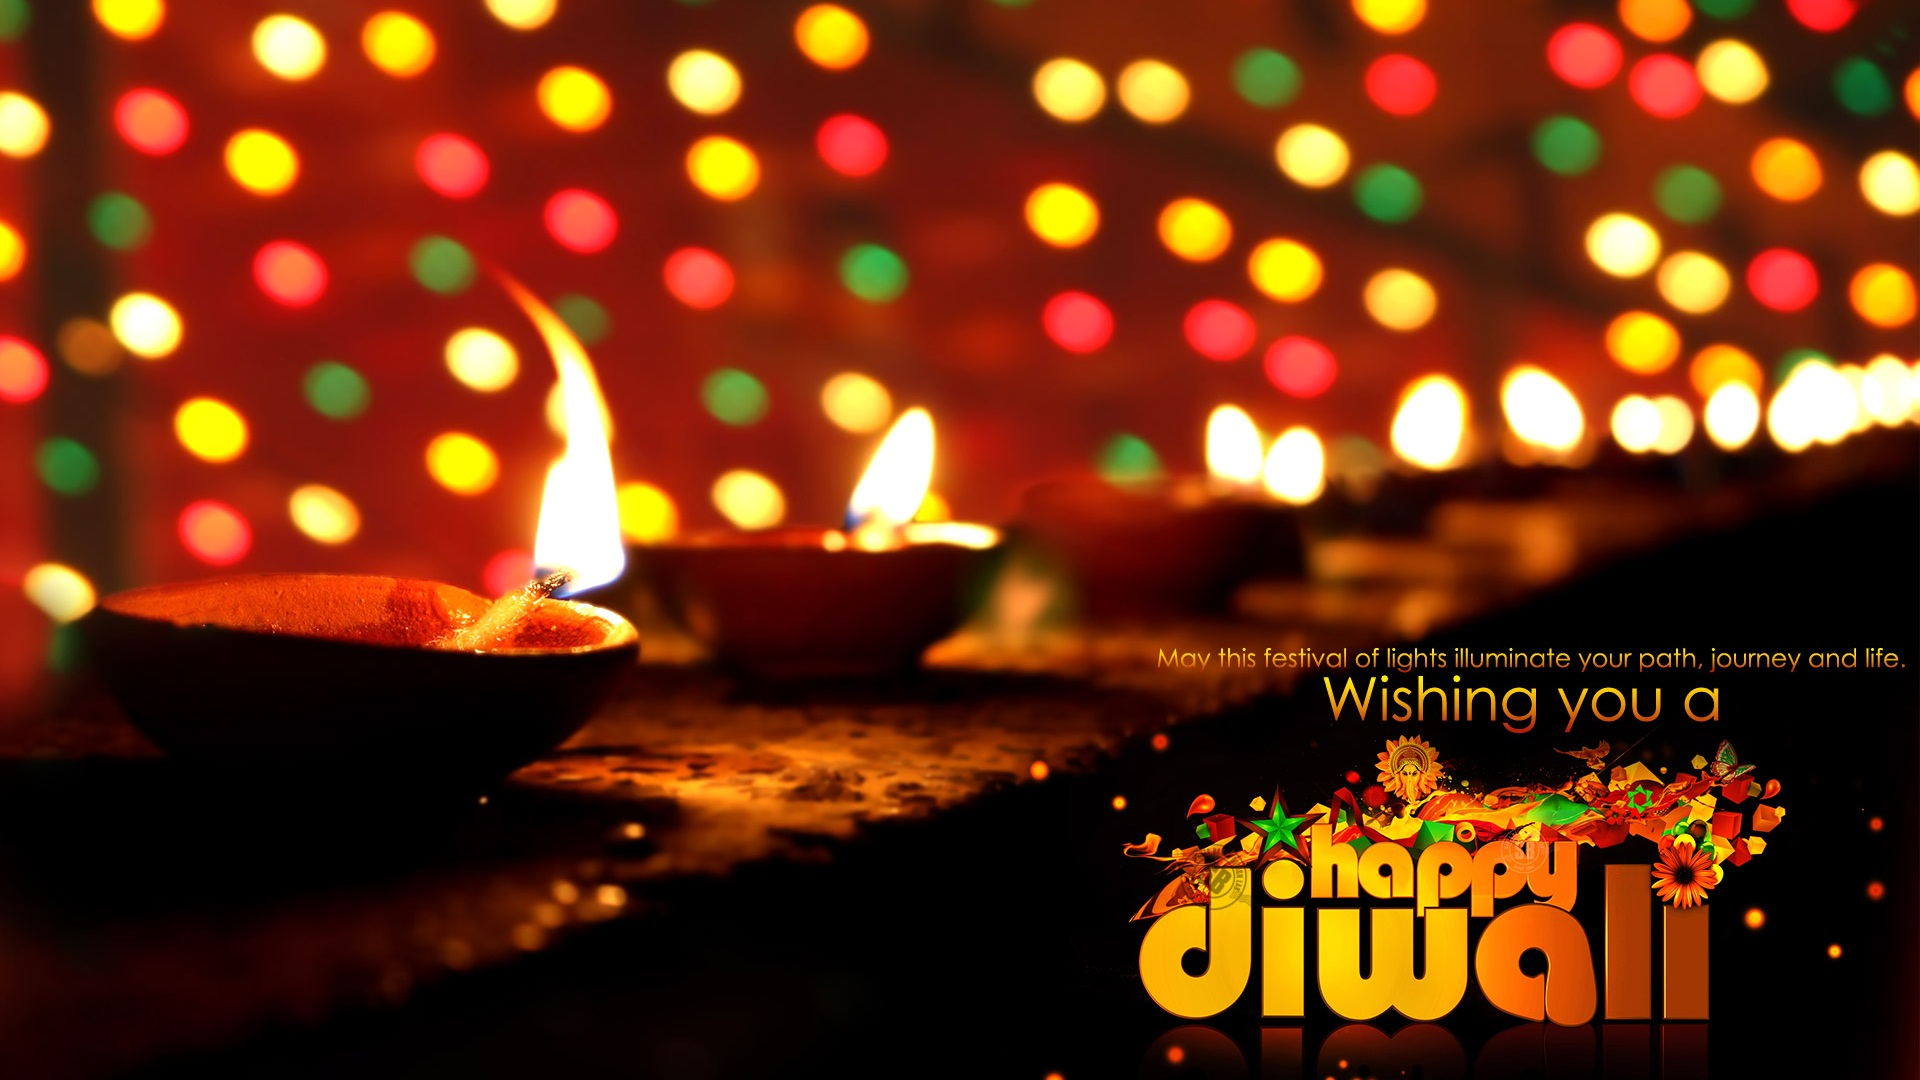 Diwali Wishes Quotes Wallpaper Happy Karthigai Deepam 2018 669653 Hd Wallpaper Backgrounds Download